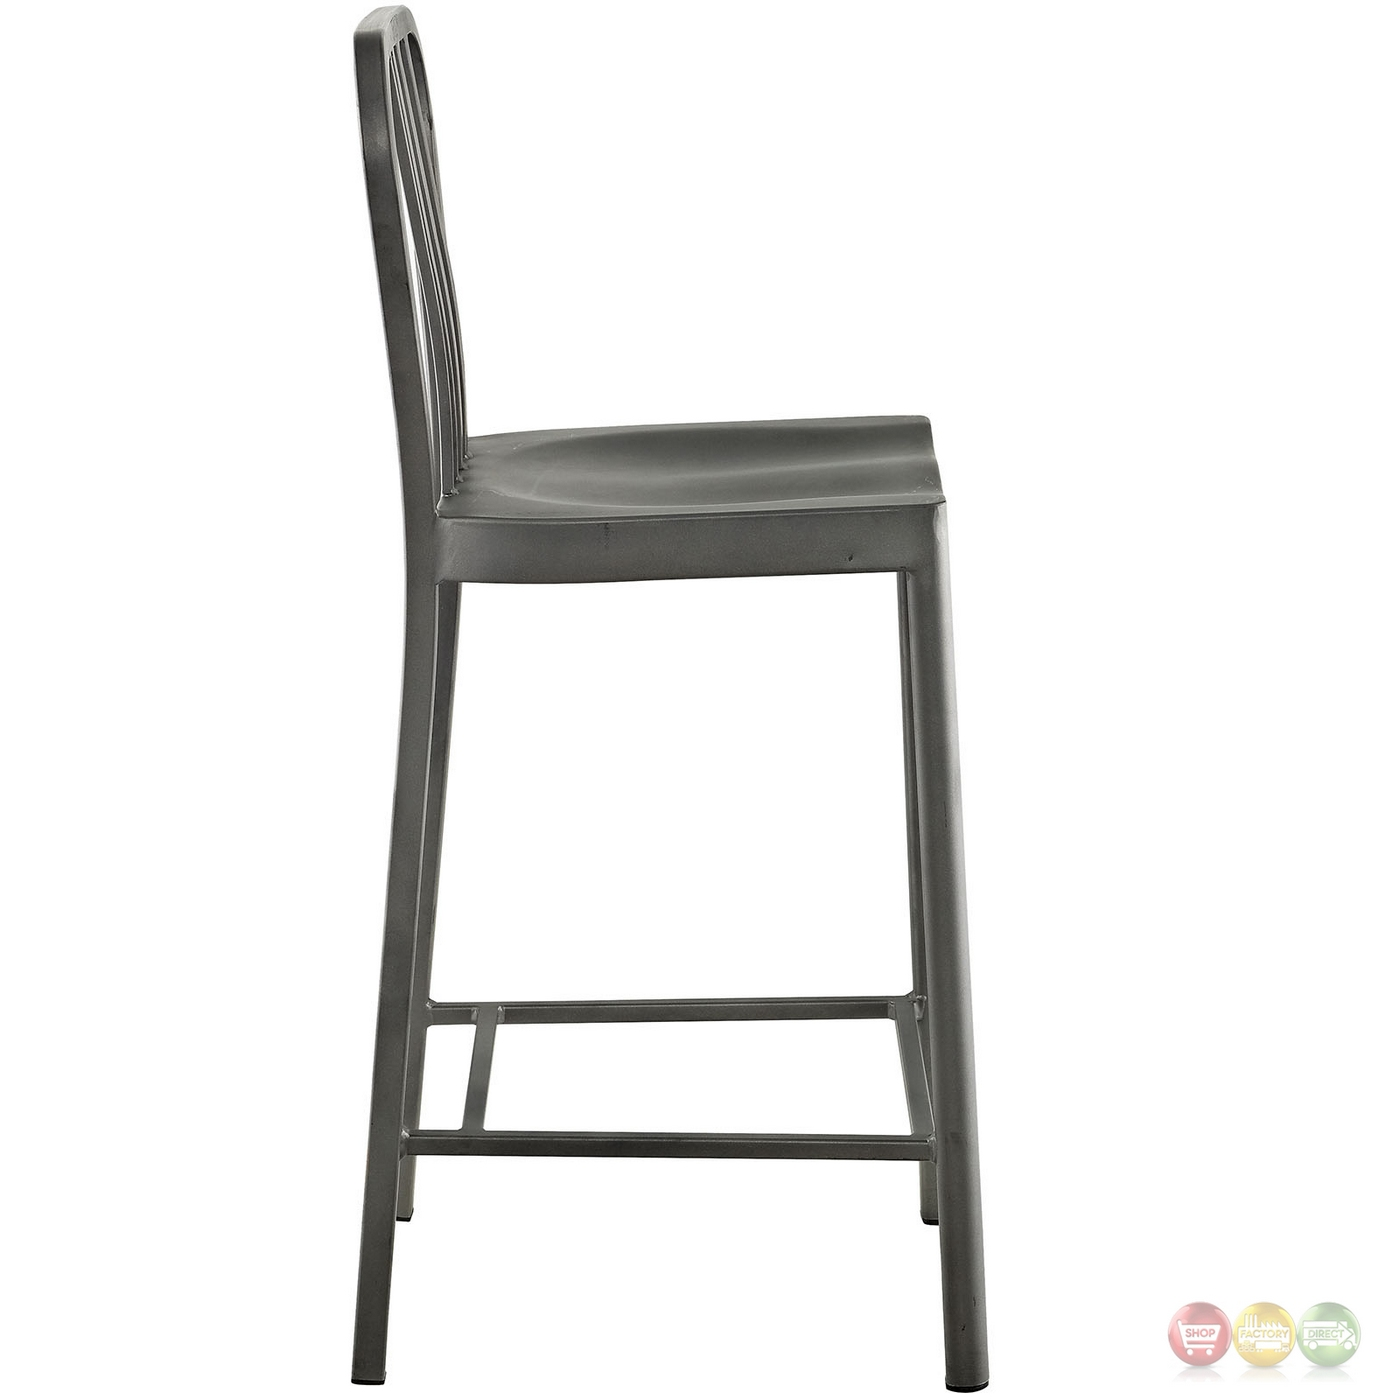 Clink Industrial Counter Height Stool With Brushed Steel